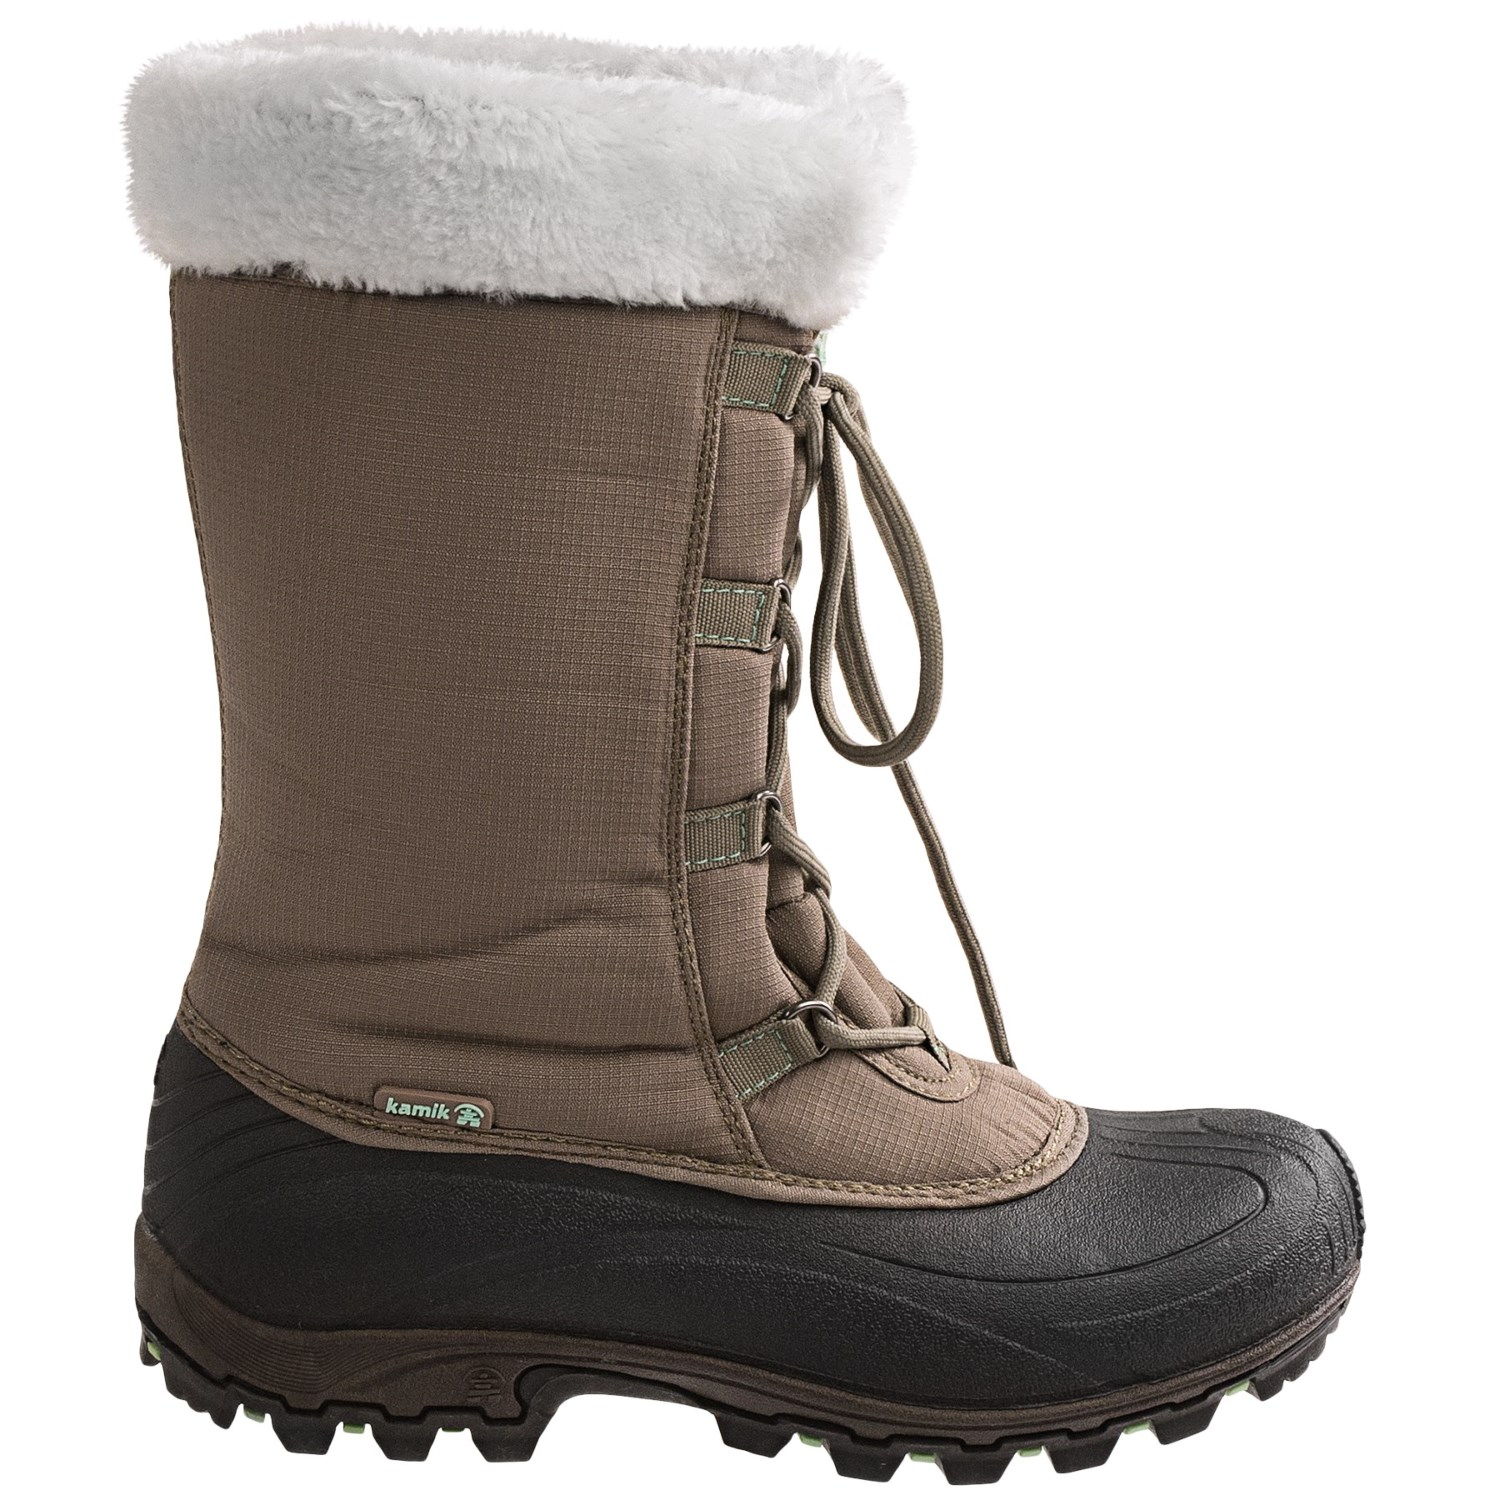 Kamik Rival Snow Boots (For Women) - Save 80%